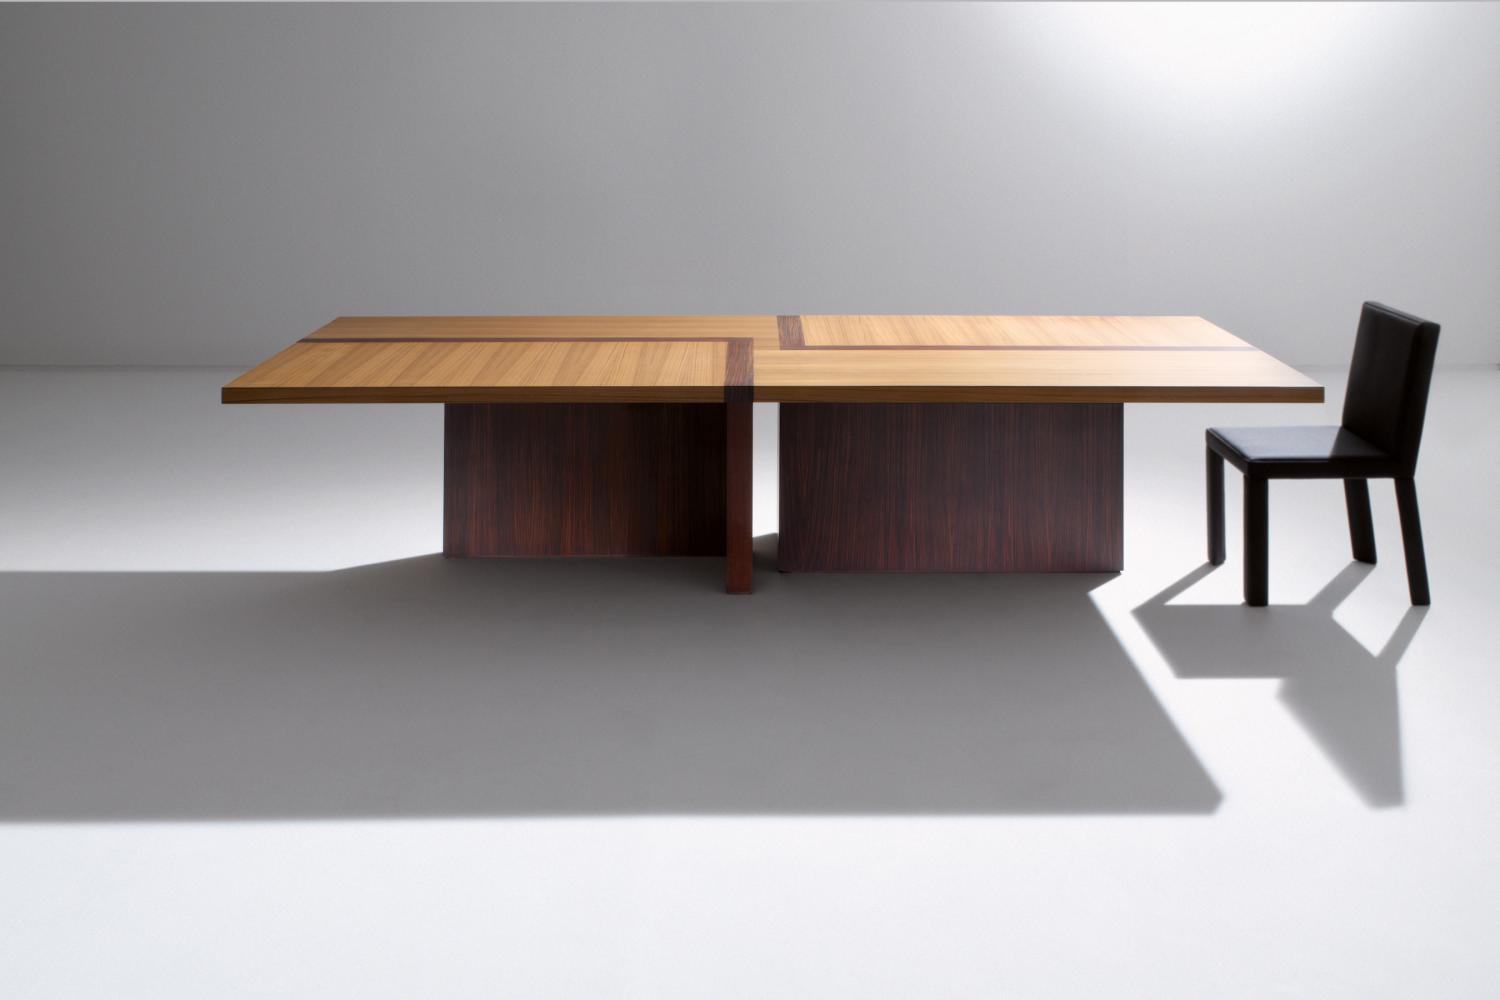 laurameroni bd 07 rectangular table in custom size dimensions with top in teak and rosewood for luxury home